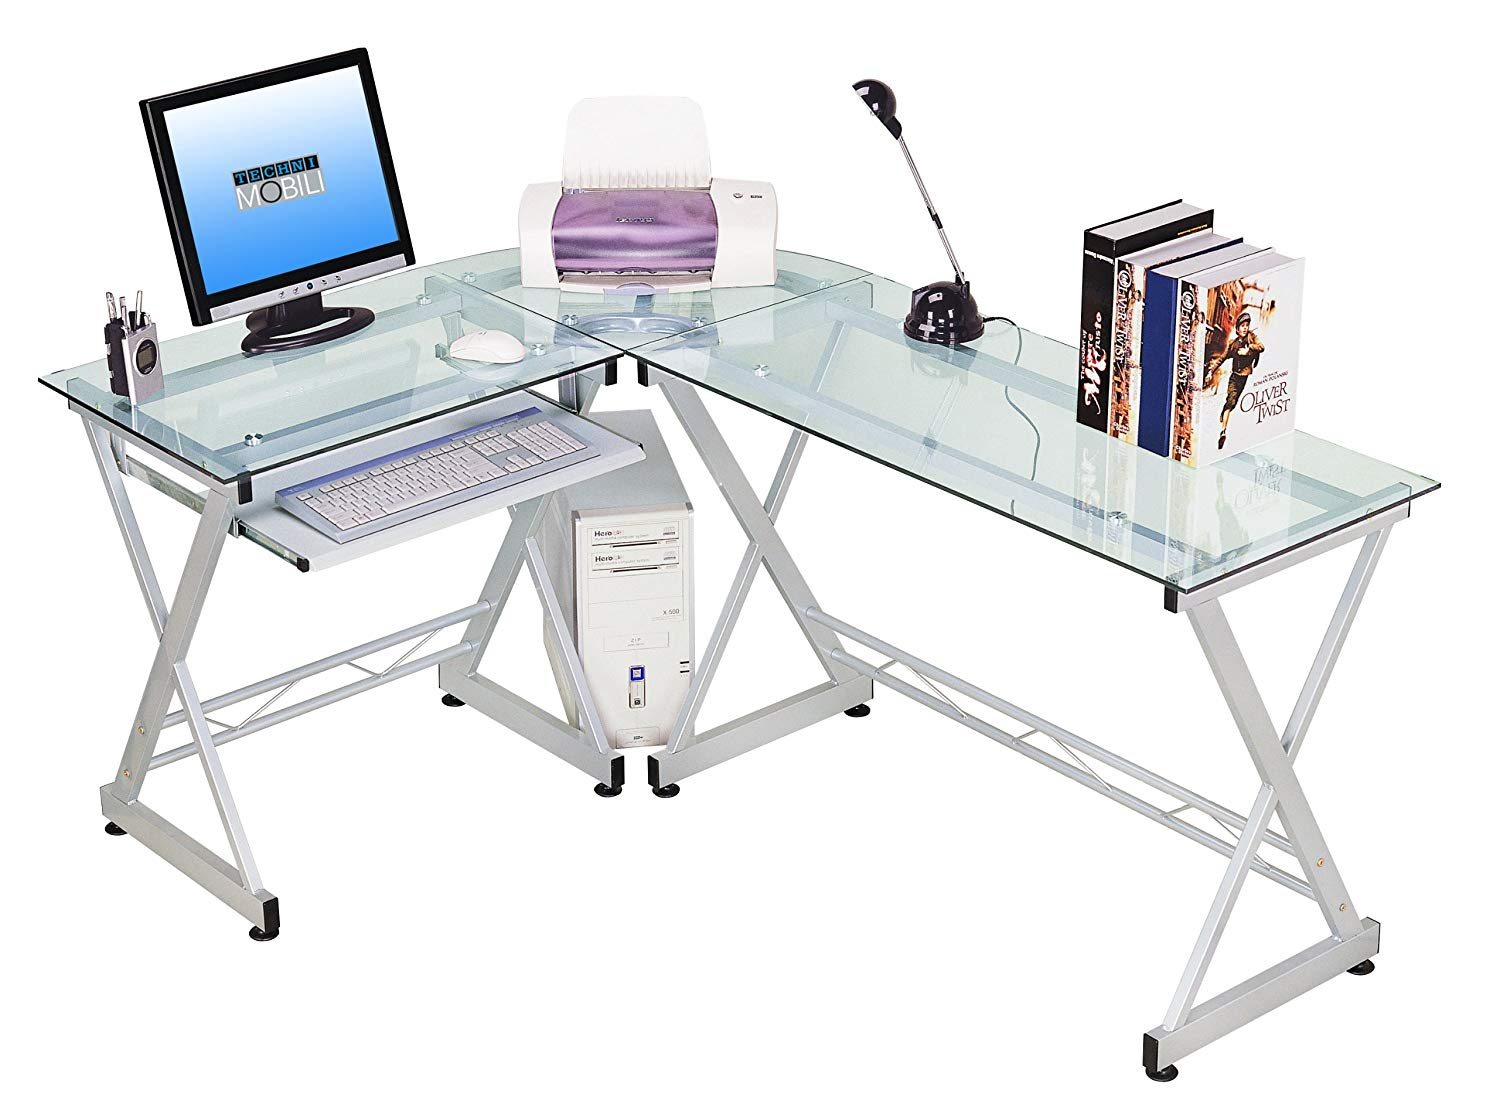 Computer table made of glass amazon.com: techni mobili corner desk made of hardened glass in L-shape with pull-out LILSVNG